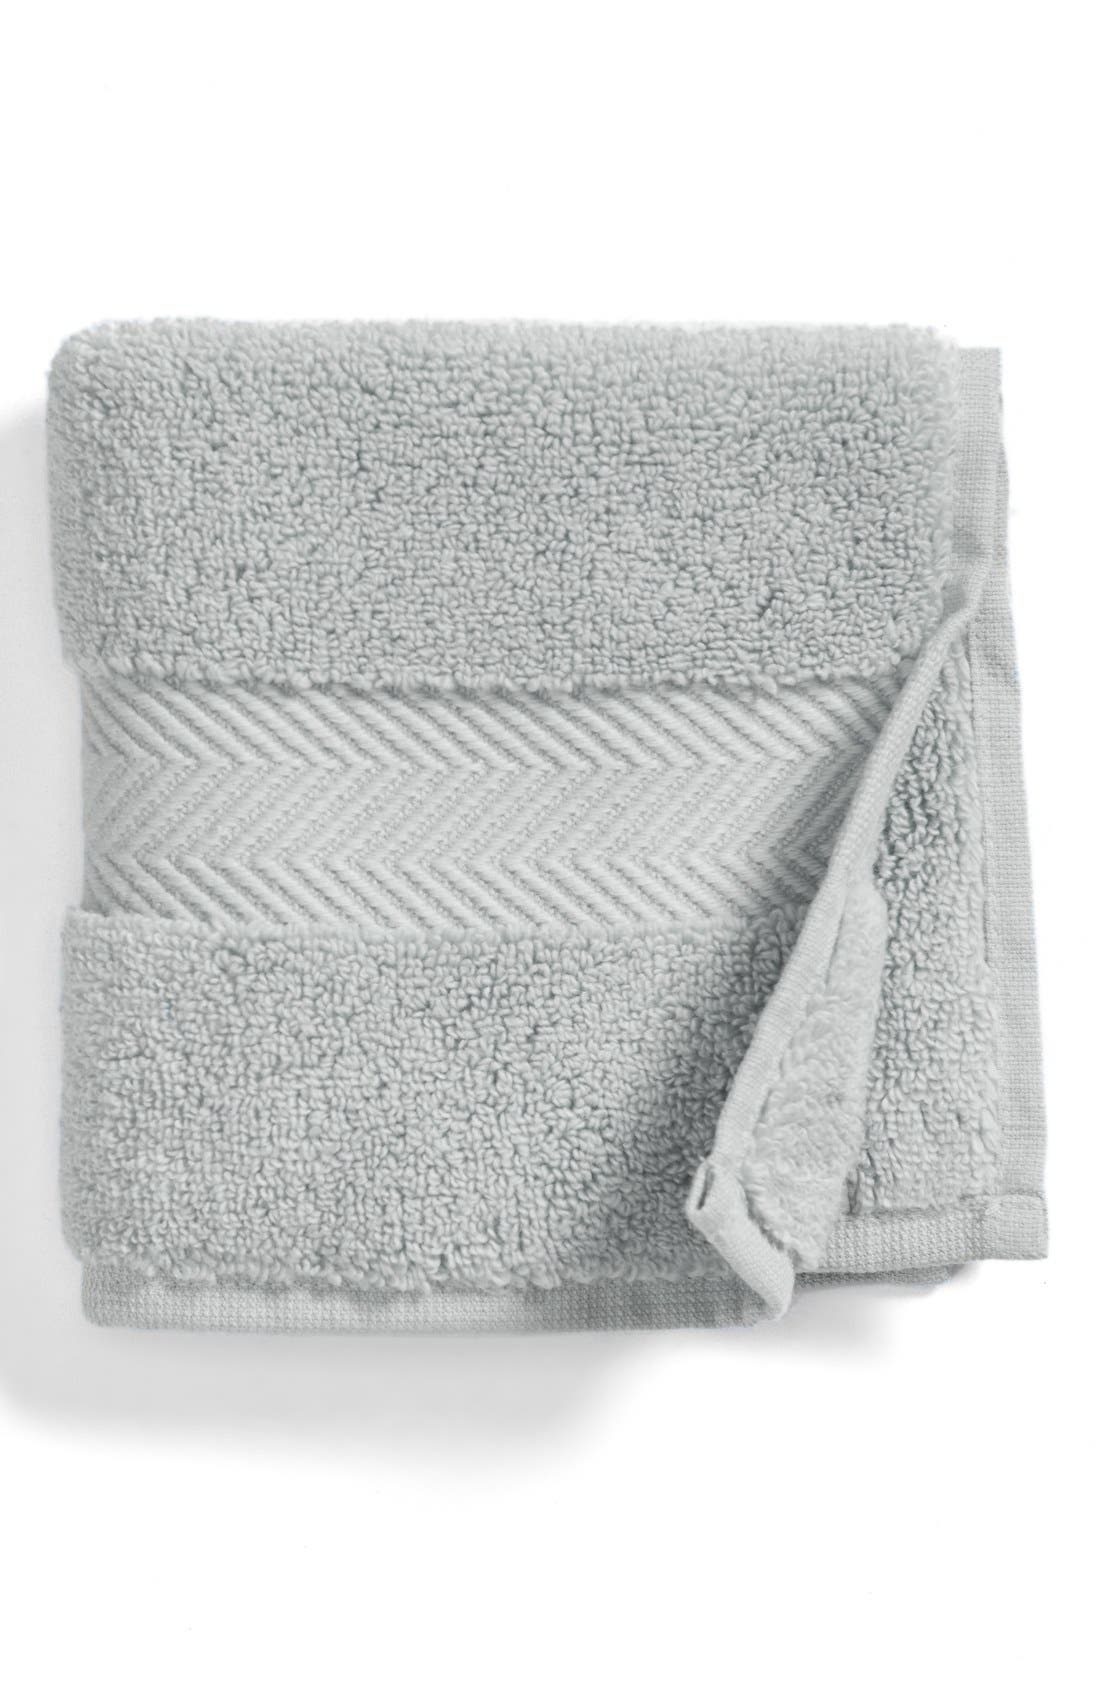 Hydrocotton Washcloth,                         Main,                         color, GREY VAPOR